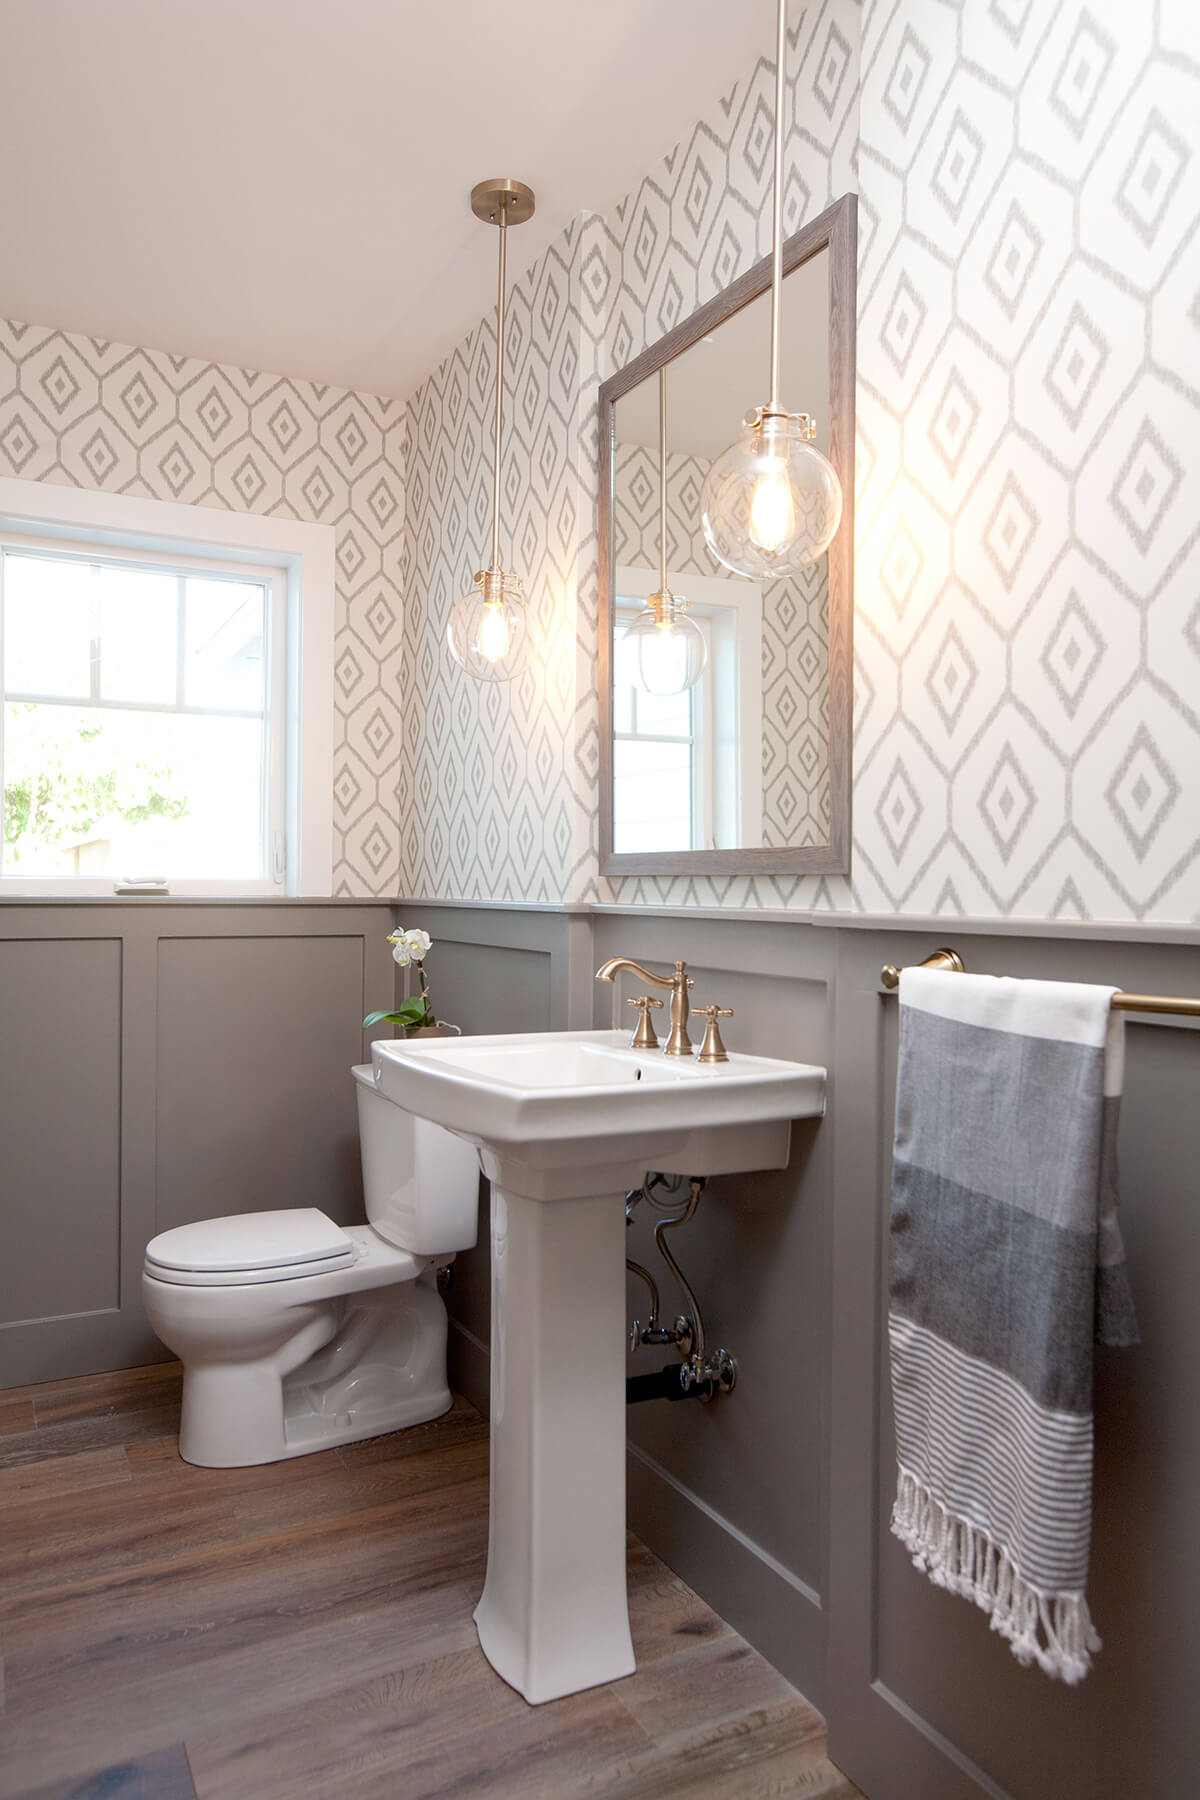 Classic White Sink with Large Mirror